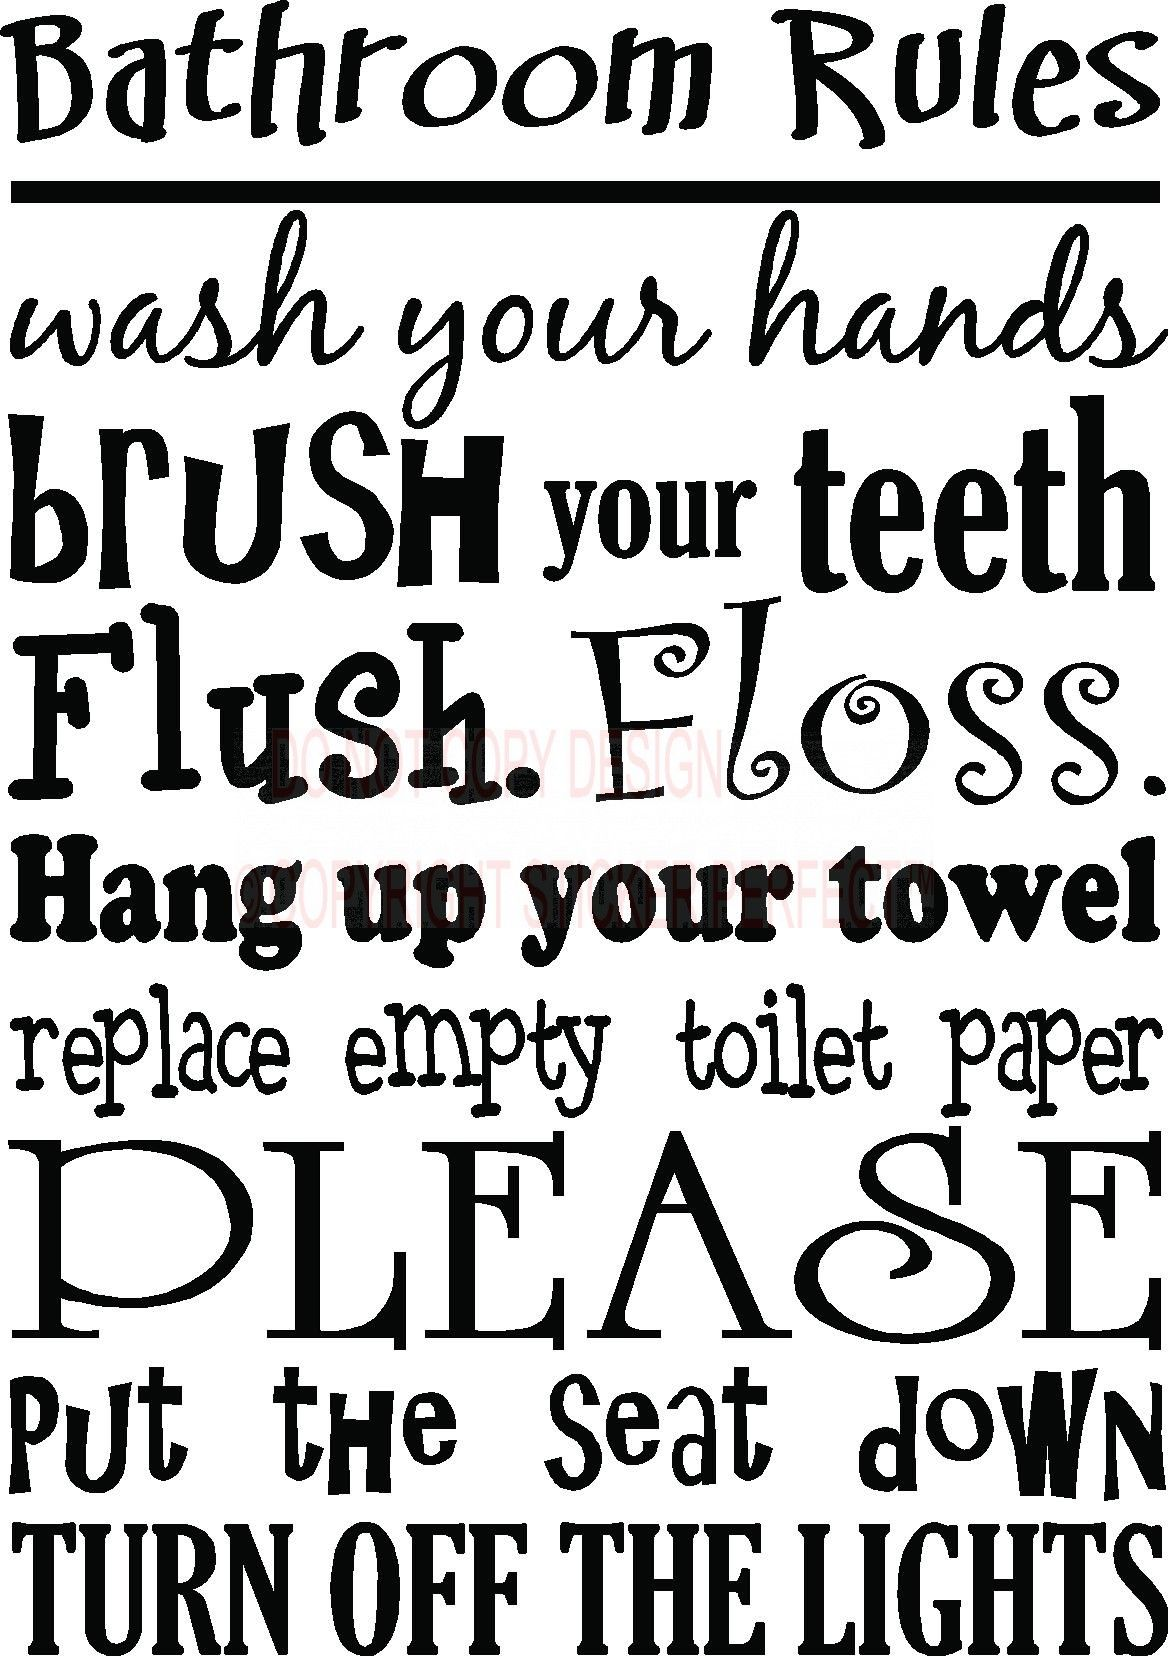 Bathroom Rules Wall Art Bathroom Rules Cute Inspirational Vinyl - Custom vinyl wall decals sayings for bathroom